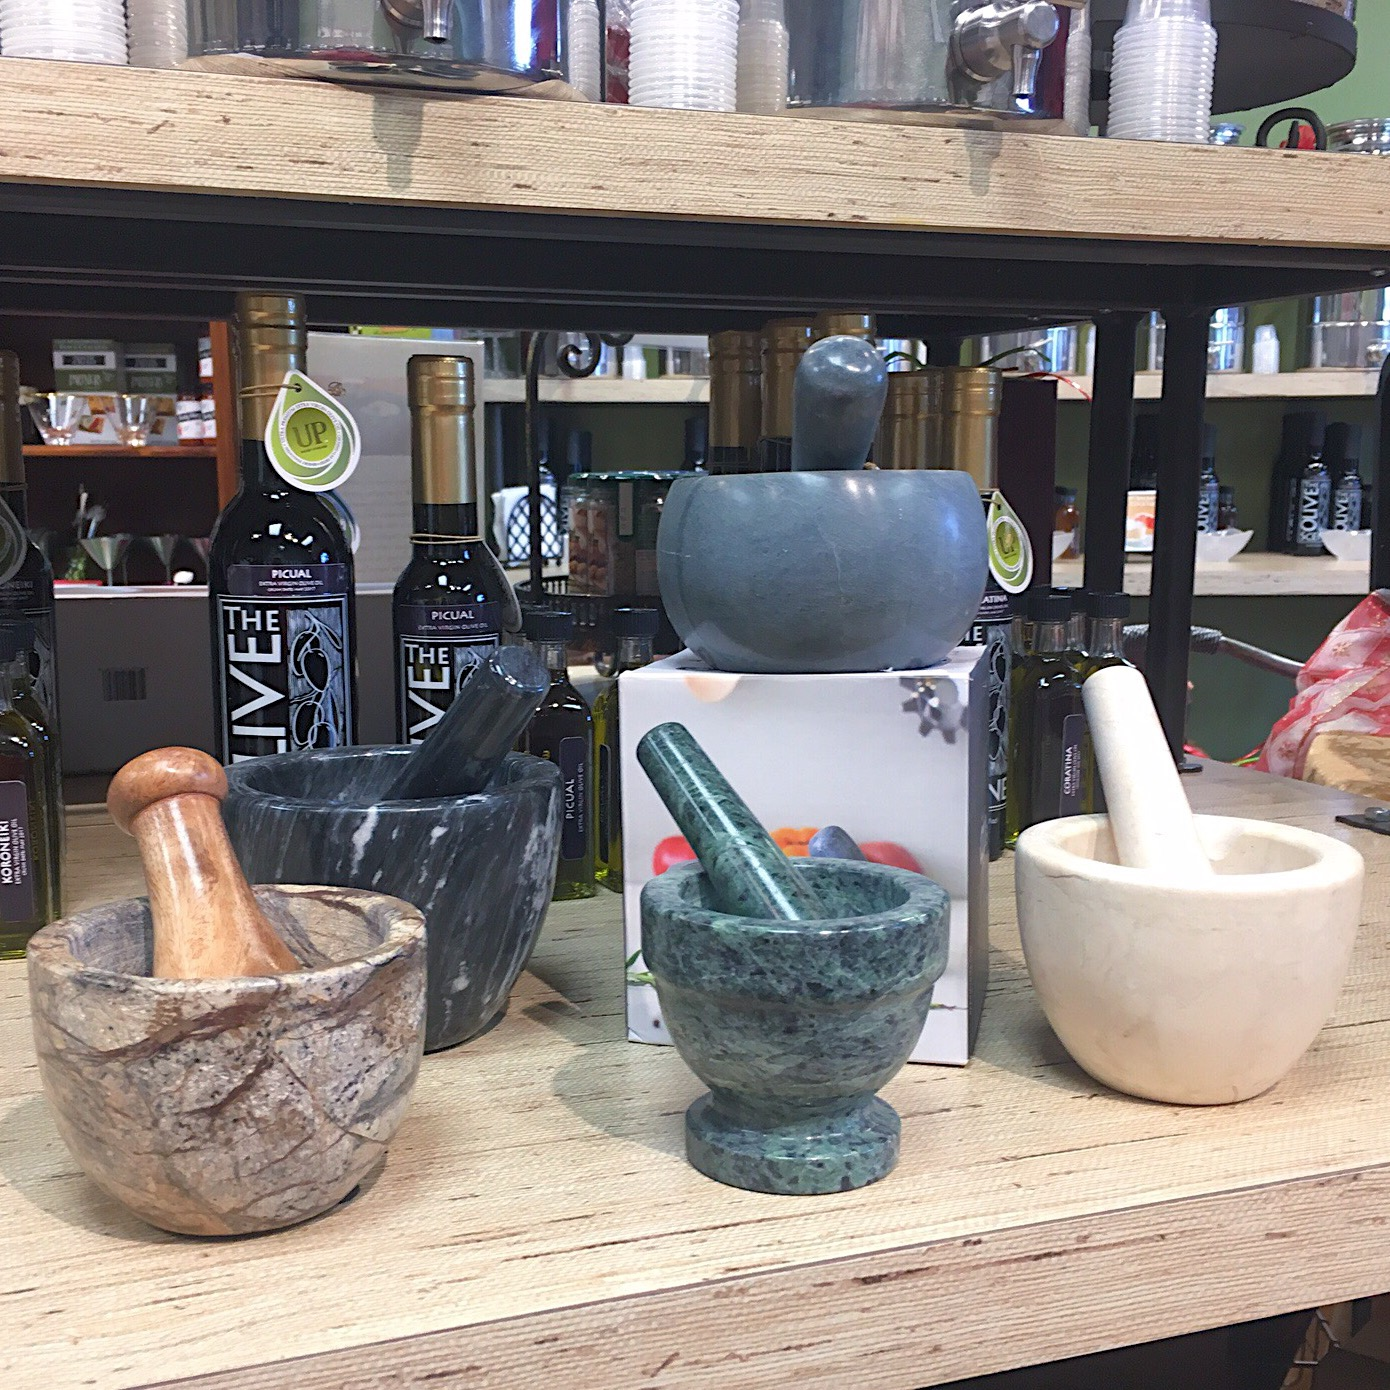 mortar and pestle sets.jpg